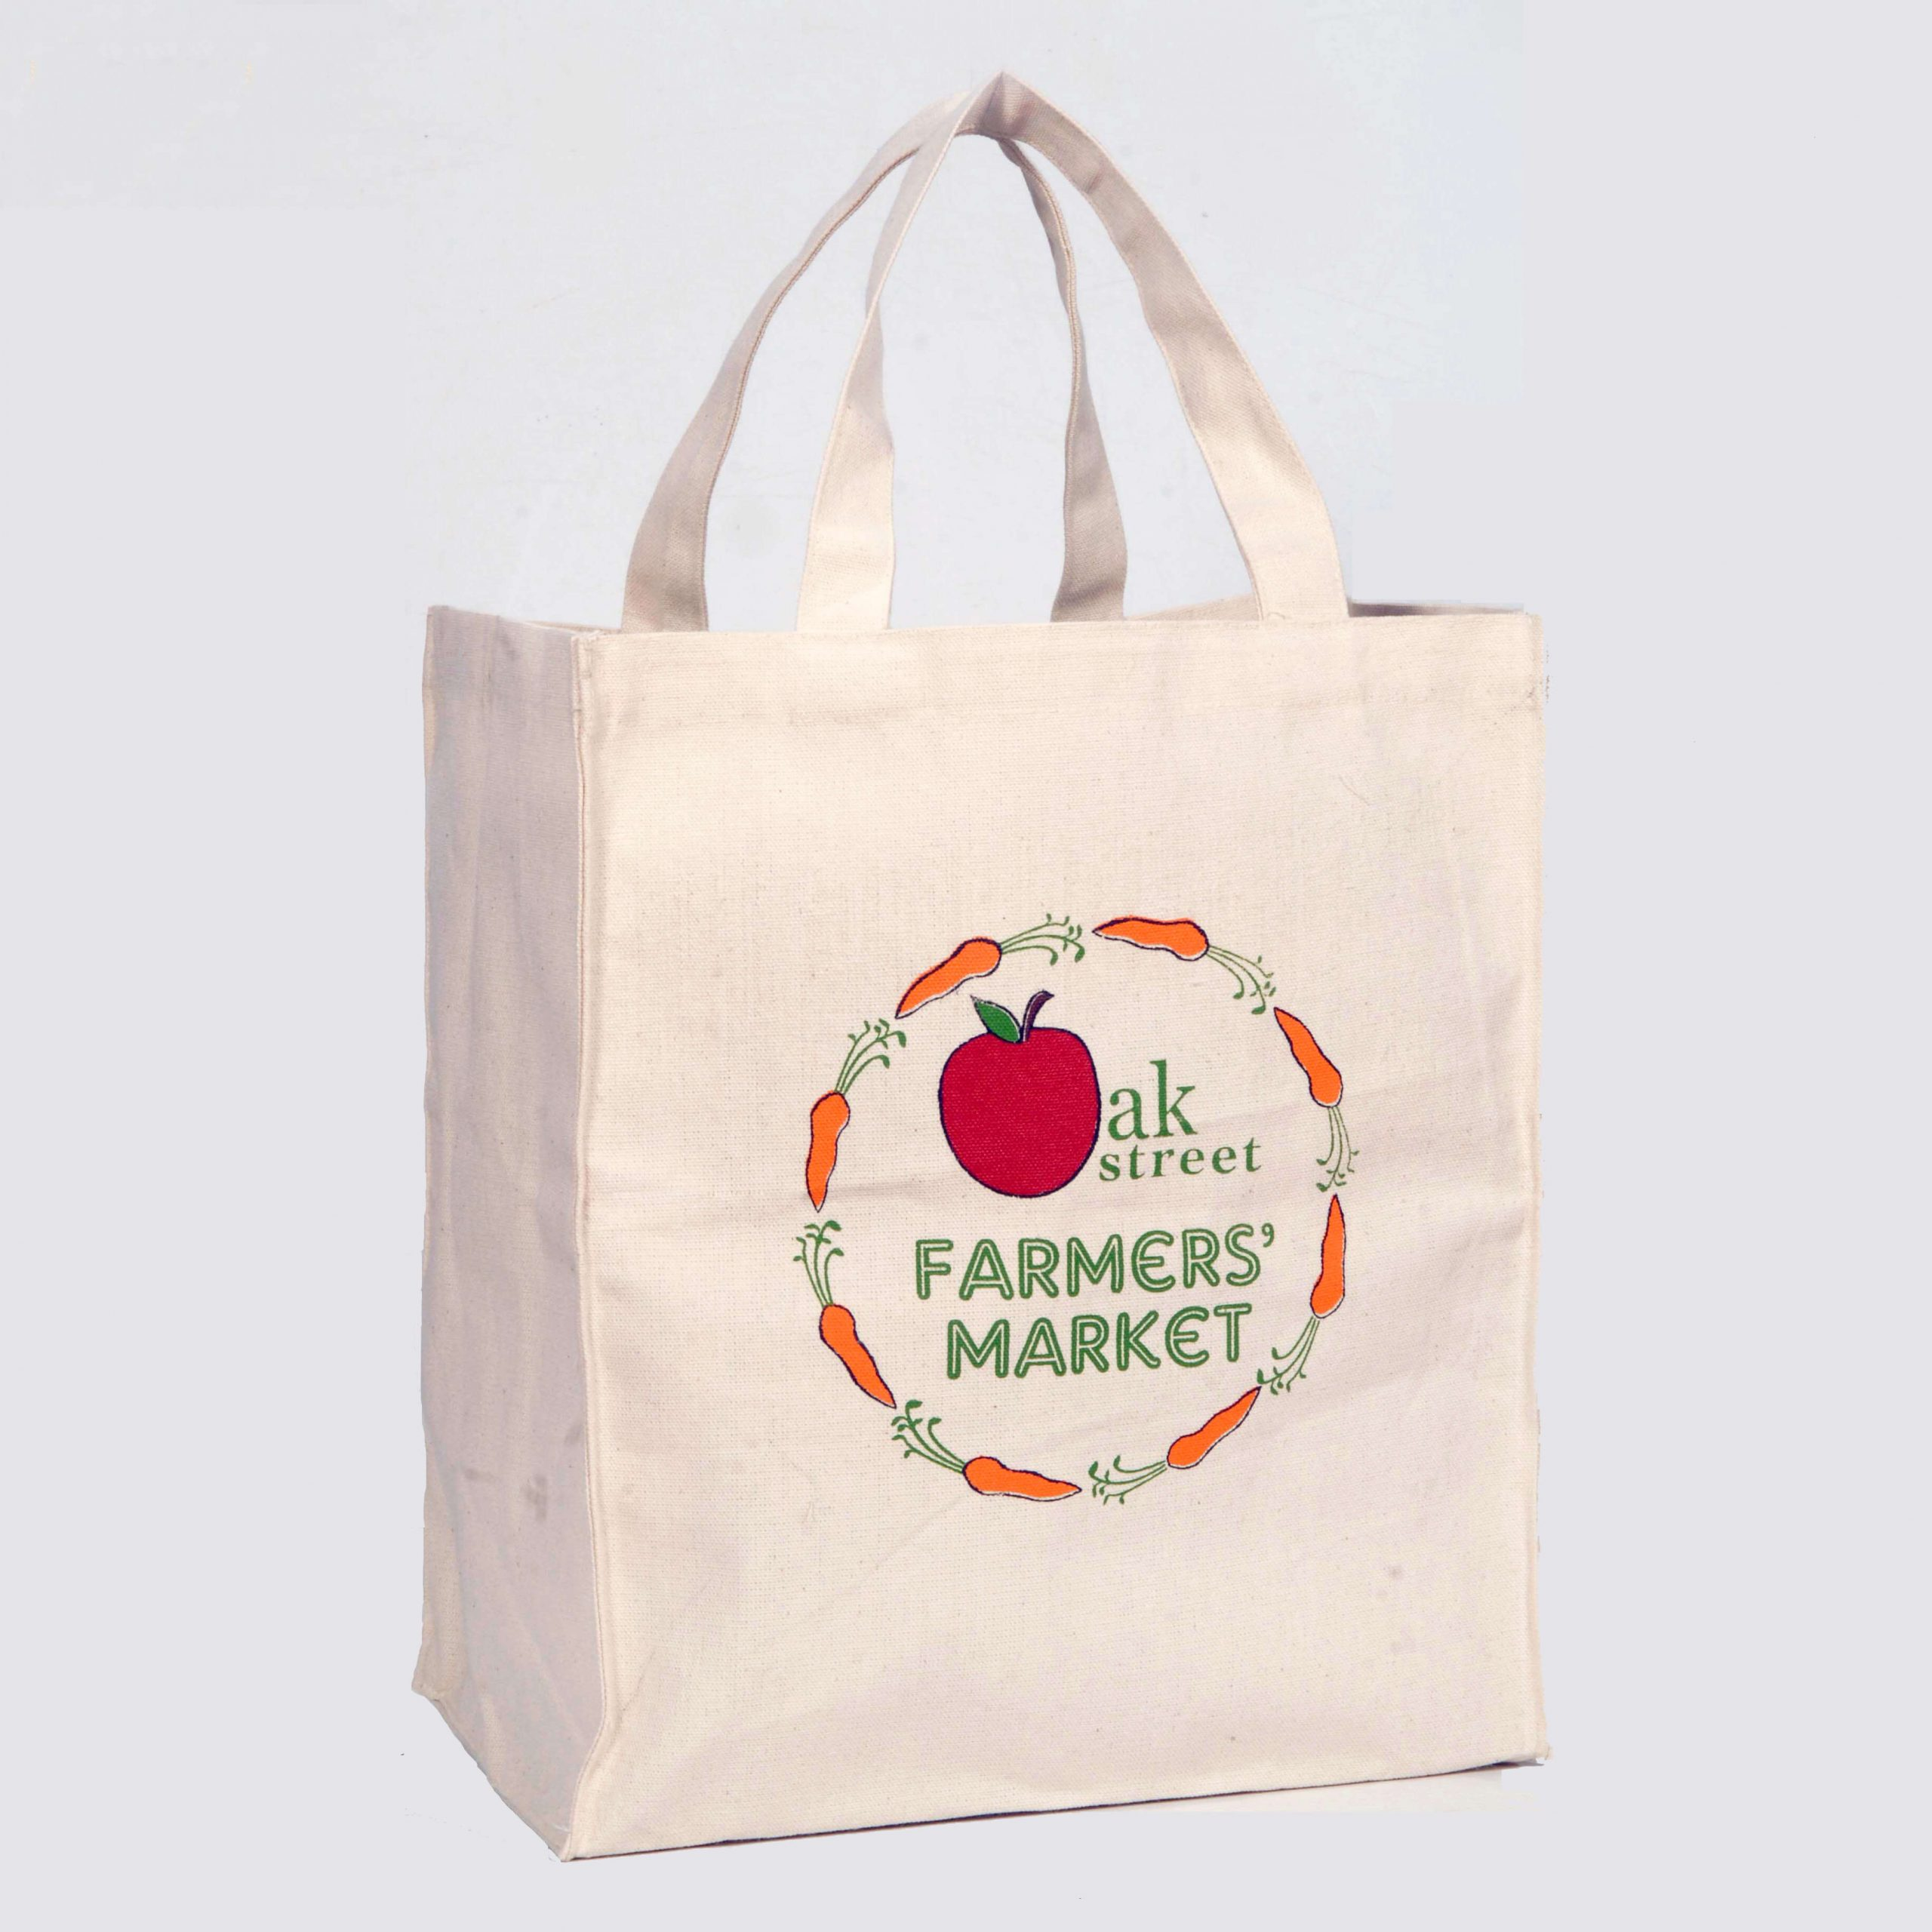 High Quality Canvas Tote Bag - Farmers Market